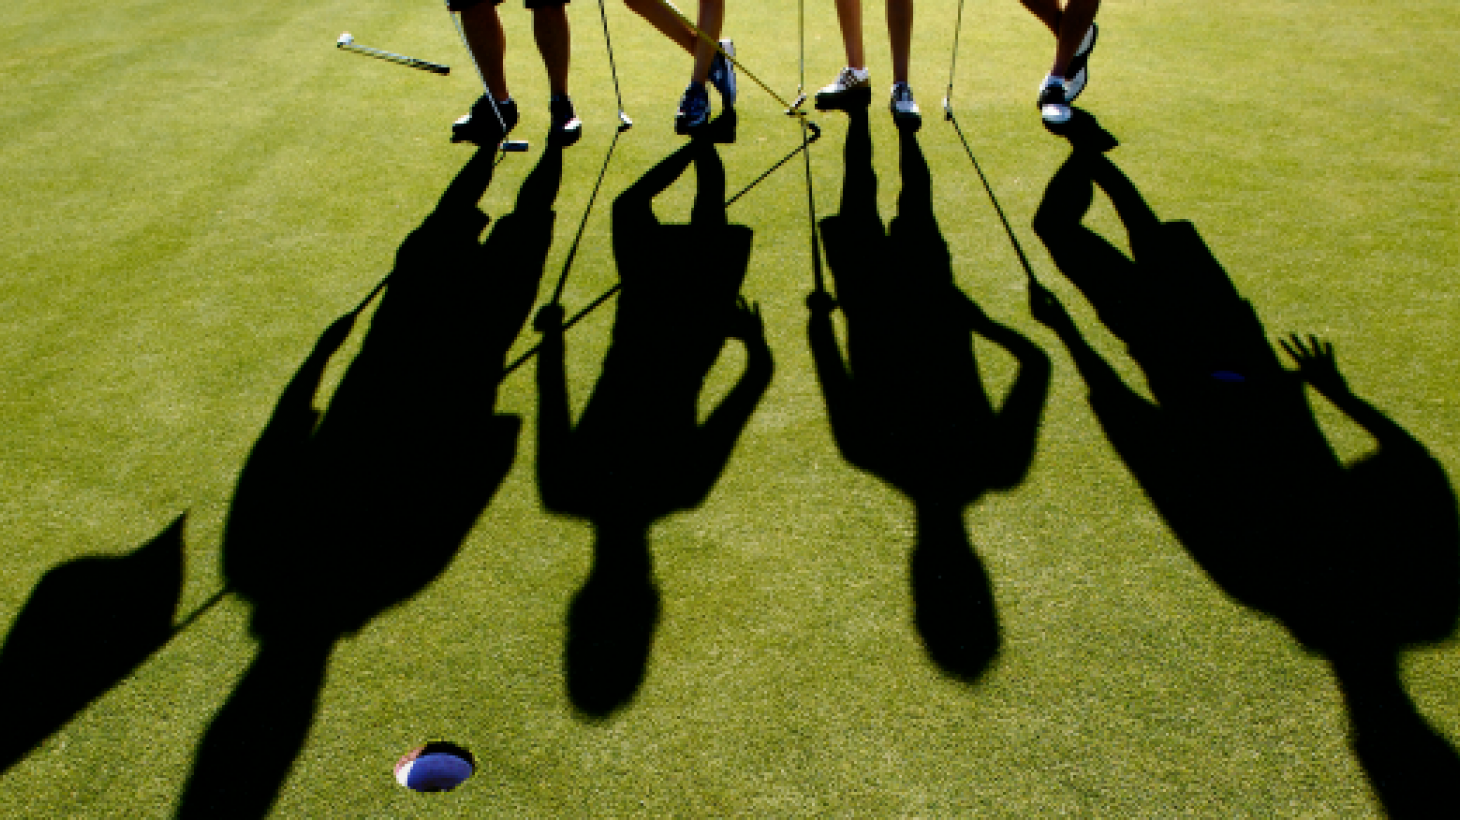 Our Favorite On Hole Contests Games For Your Next Golf Tournament